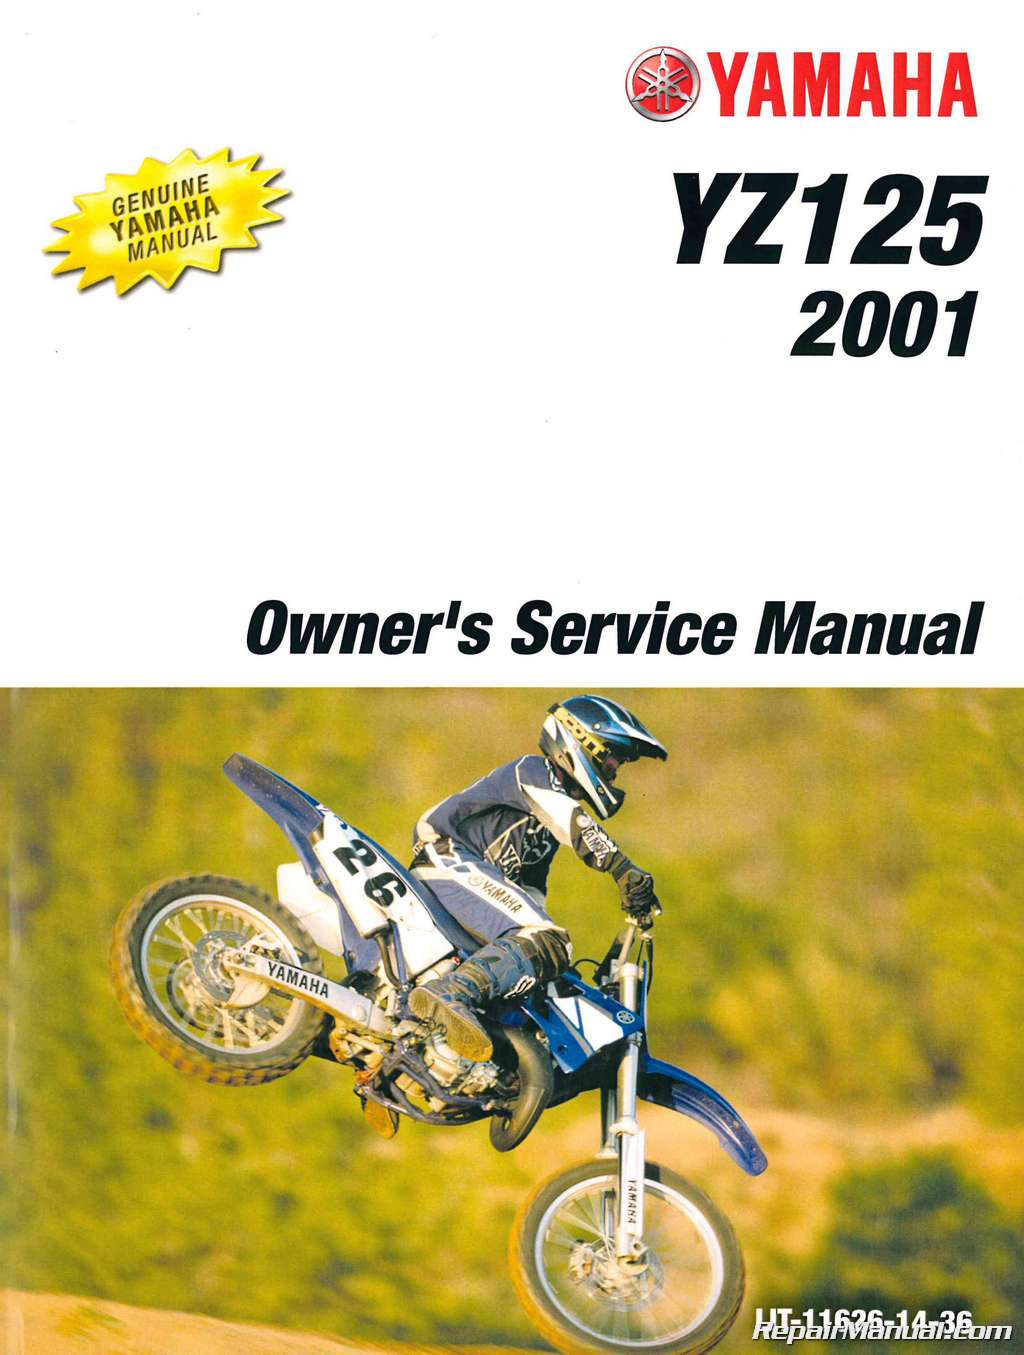 2001-Yamaha-YZ125-Owners-Service-Manual.jpg ...